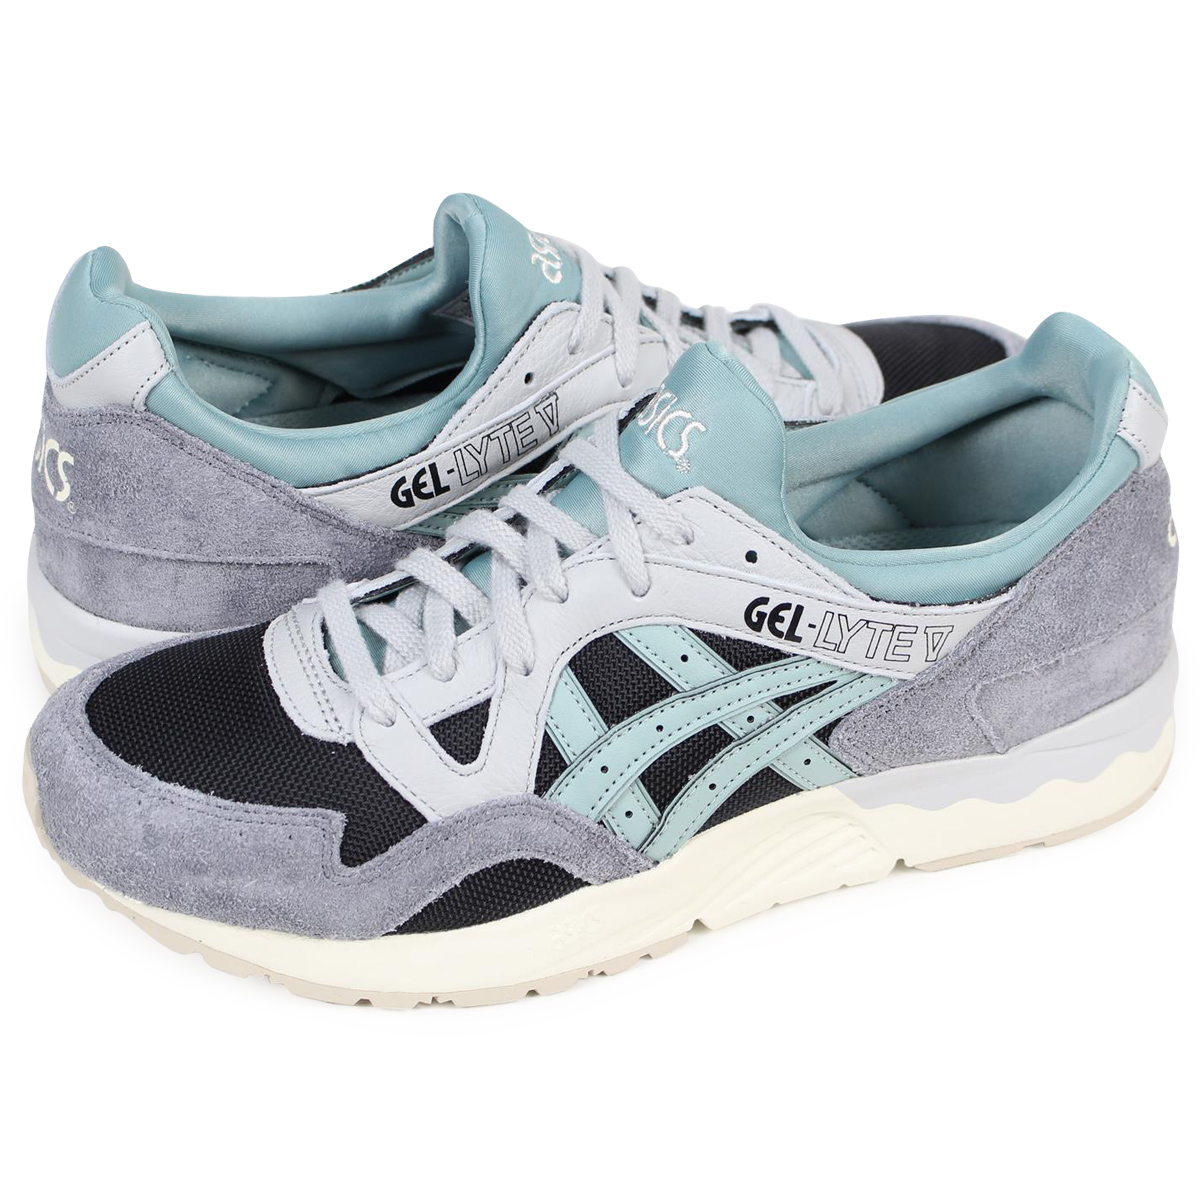 cheap for discount 6d553 5c862 asics Tiger GEL-LYTE V ASICS tiger gel light 5 sneakers H805L-9046 men ...